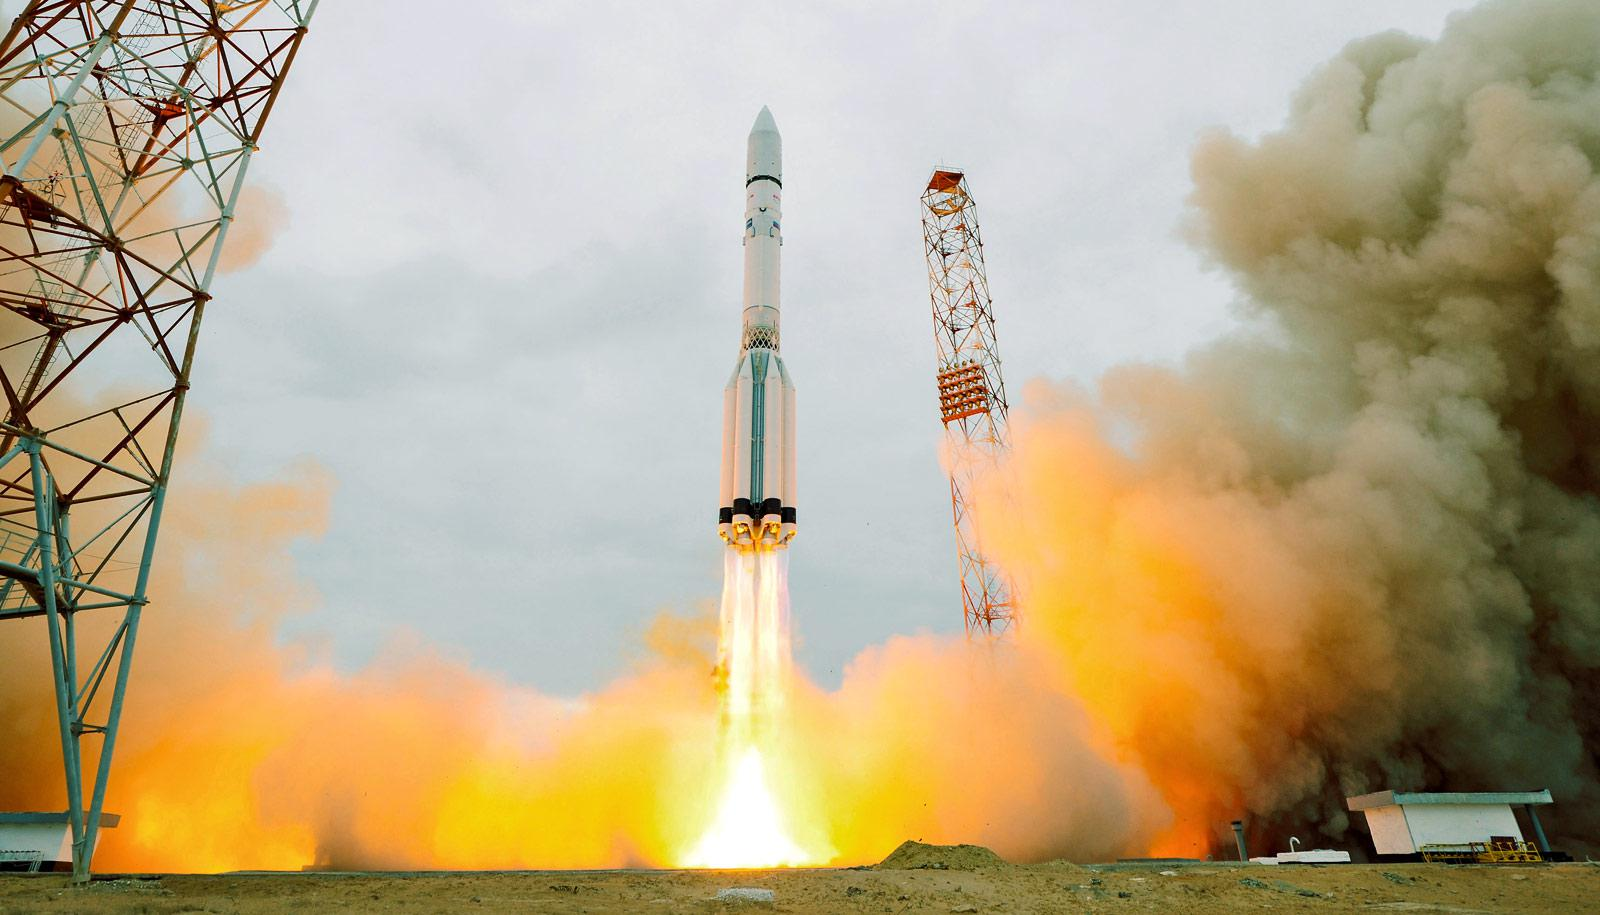 the ExoMars 2016 lifts off on a Proton-M rocket at Baikonur cosmodrome